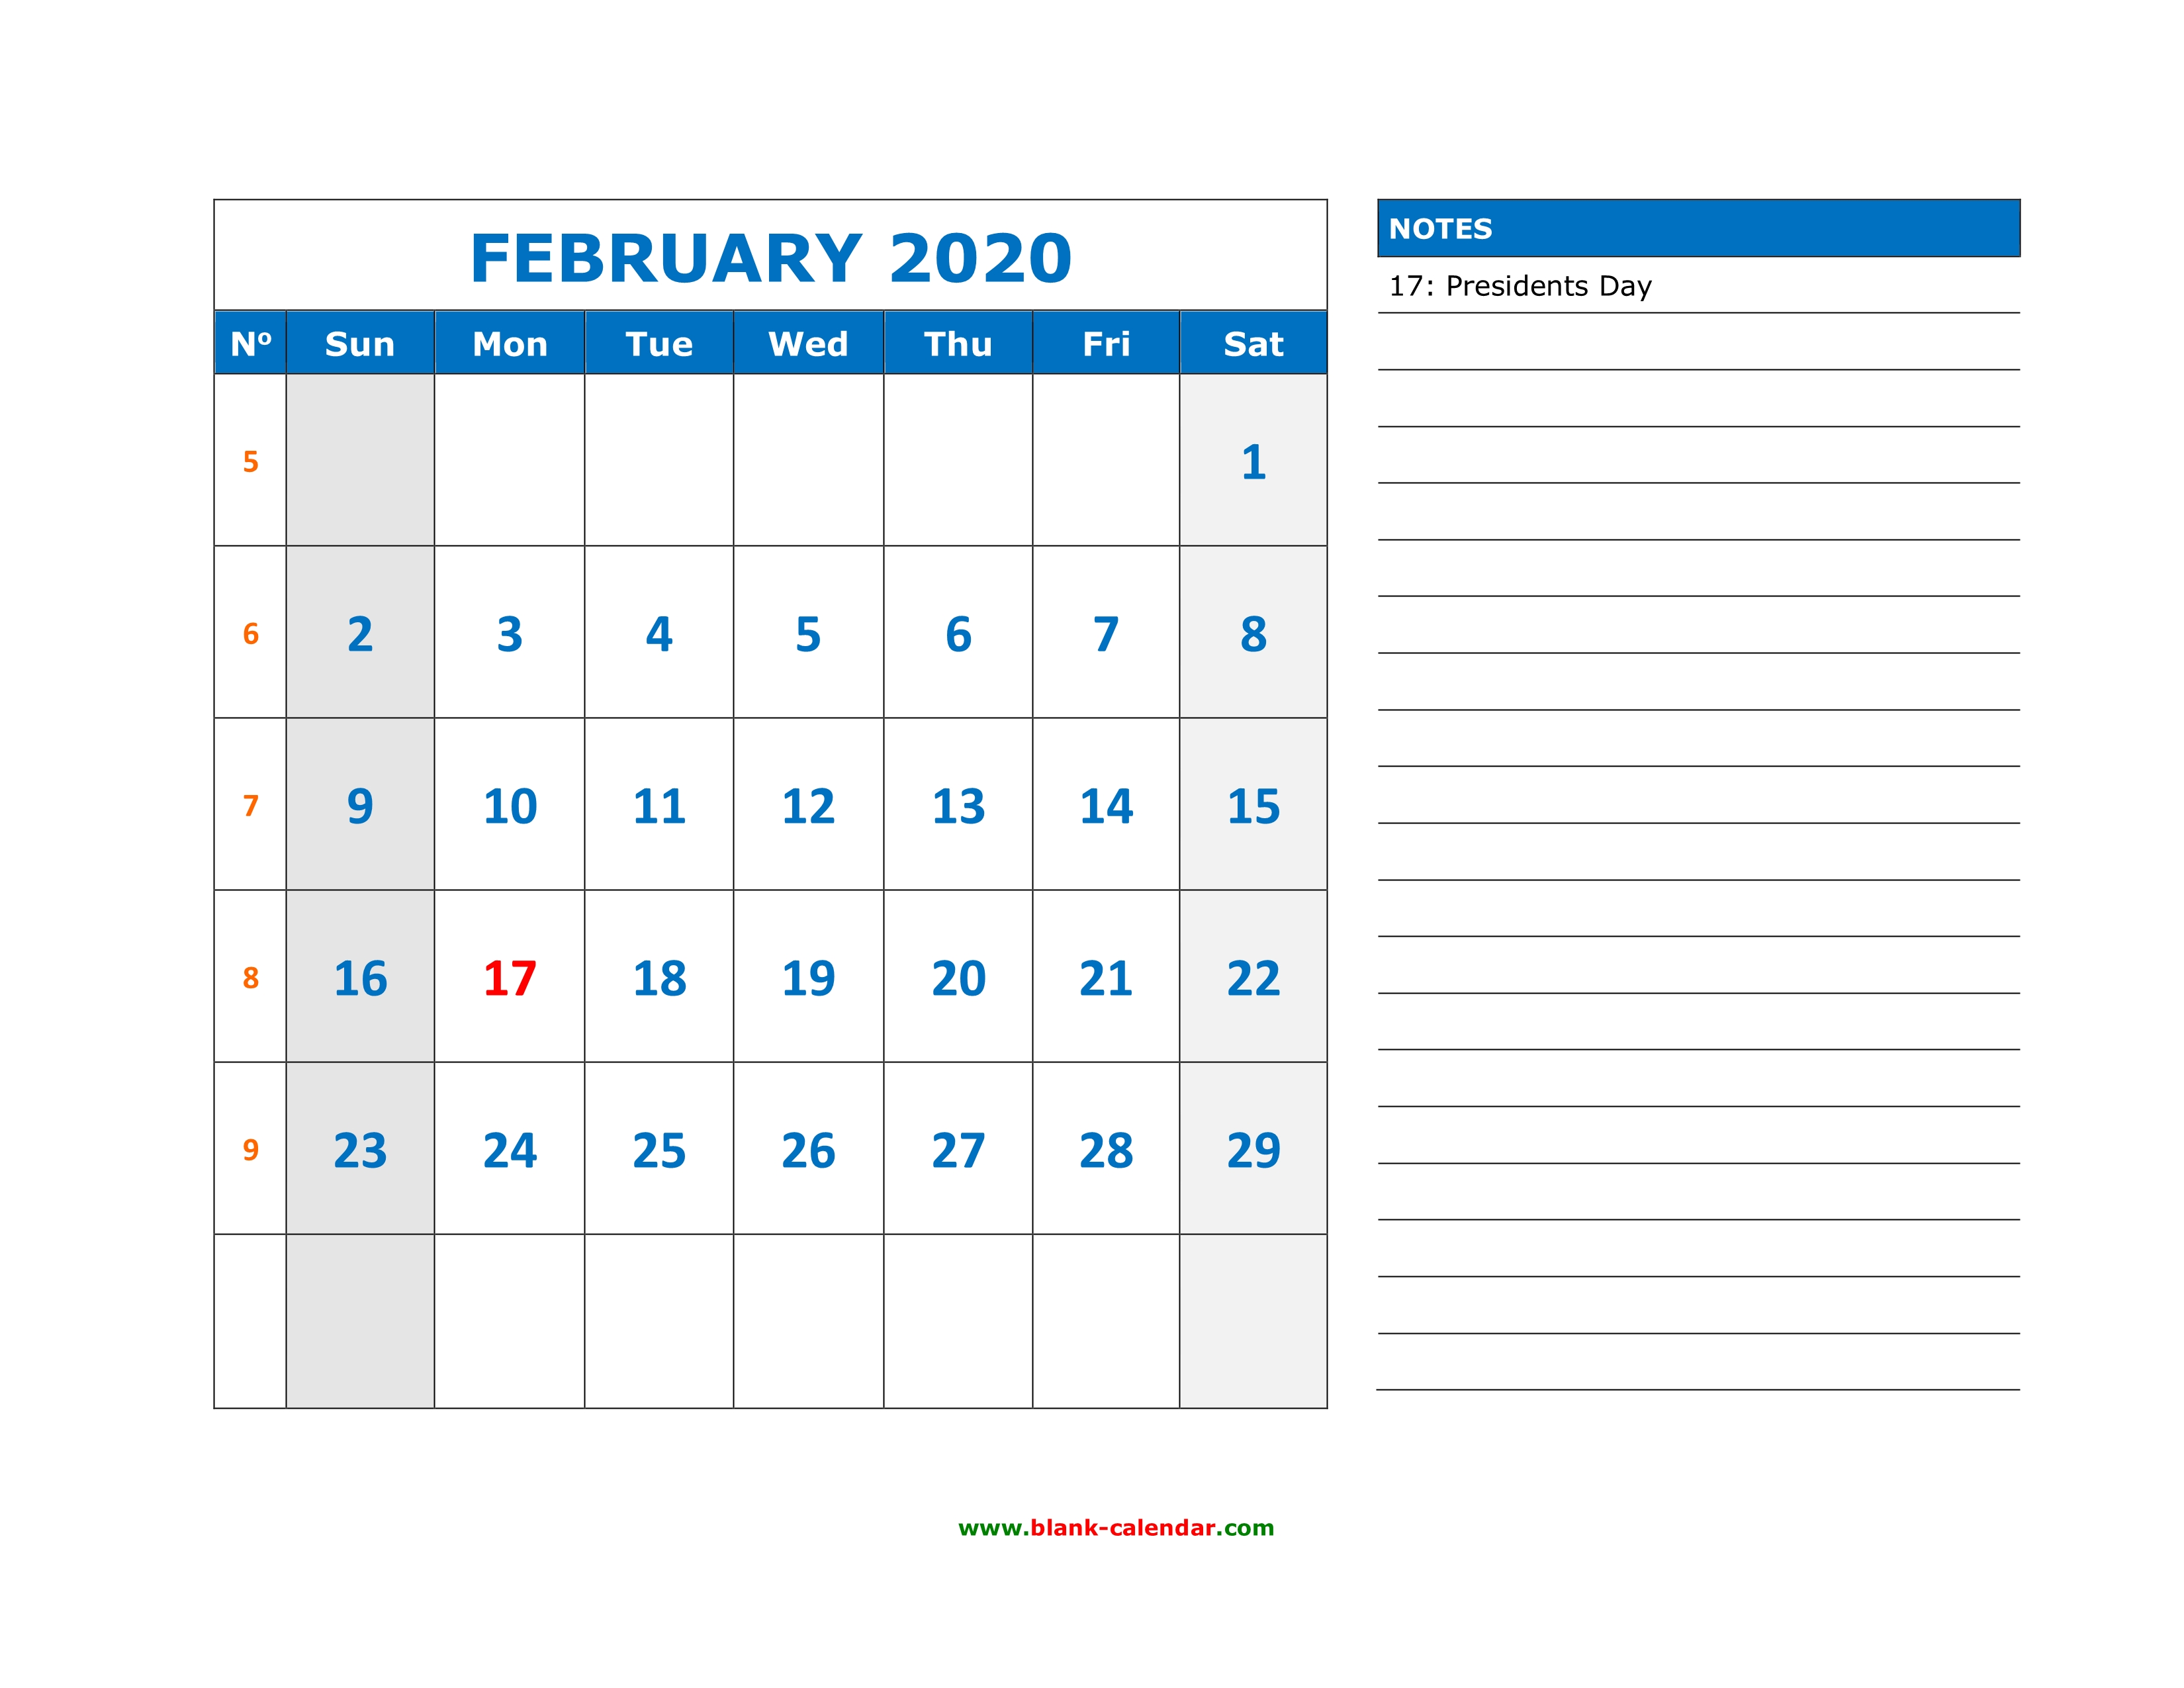 Free February 2020 Calendar Large Spaces Free Download Printable February 2020 Calendar, large space for